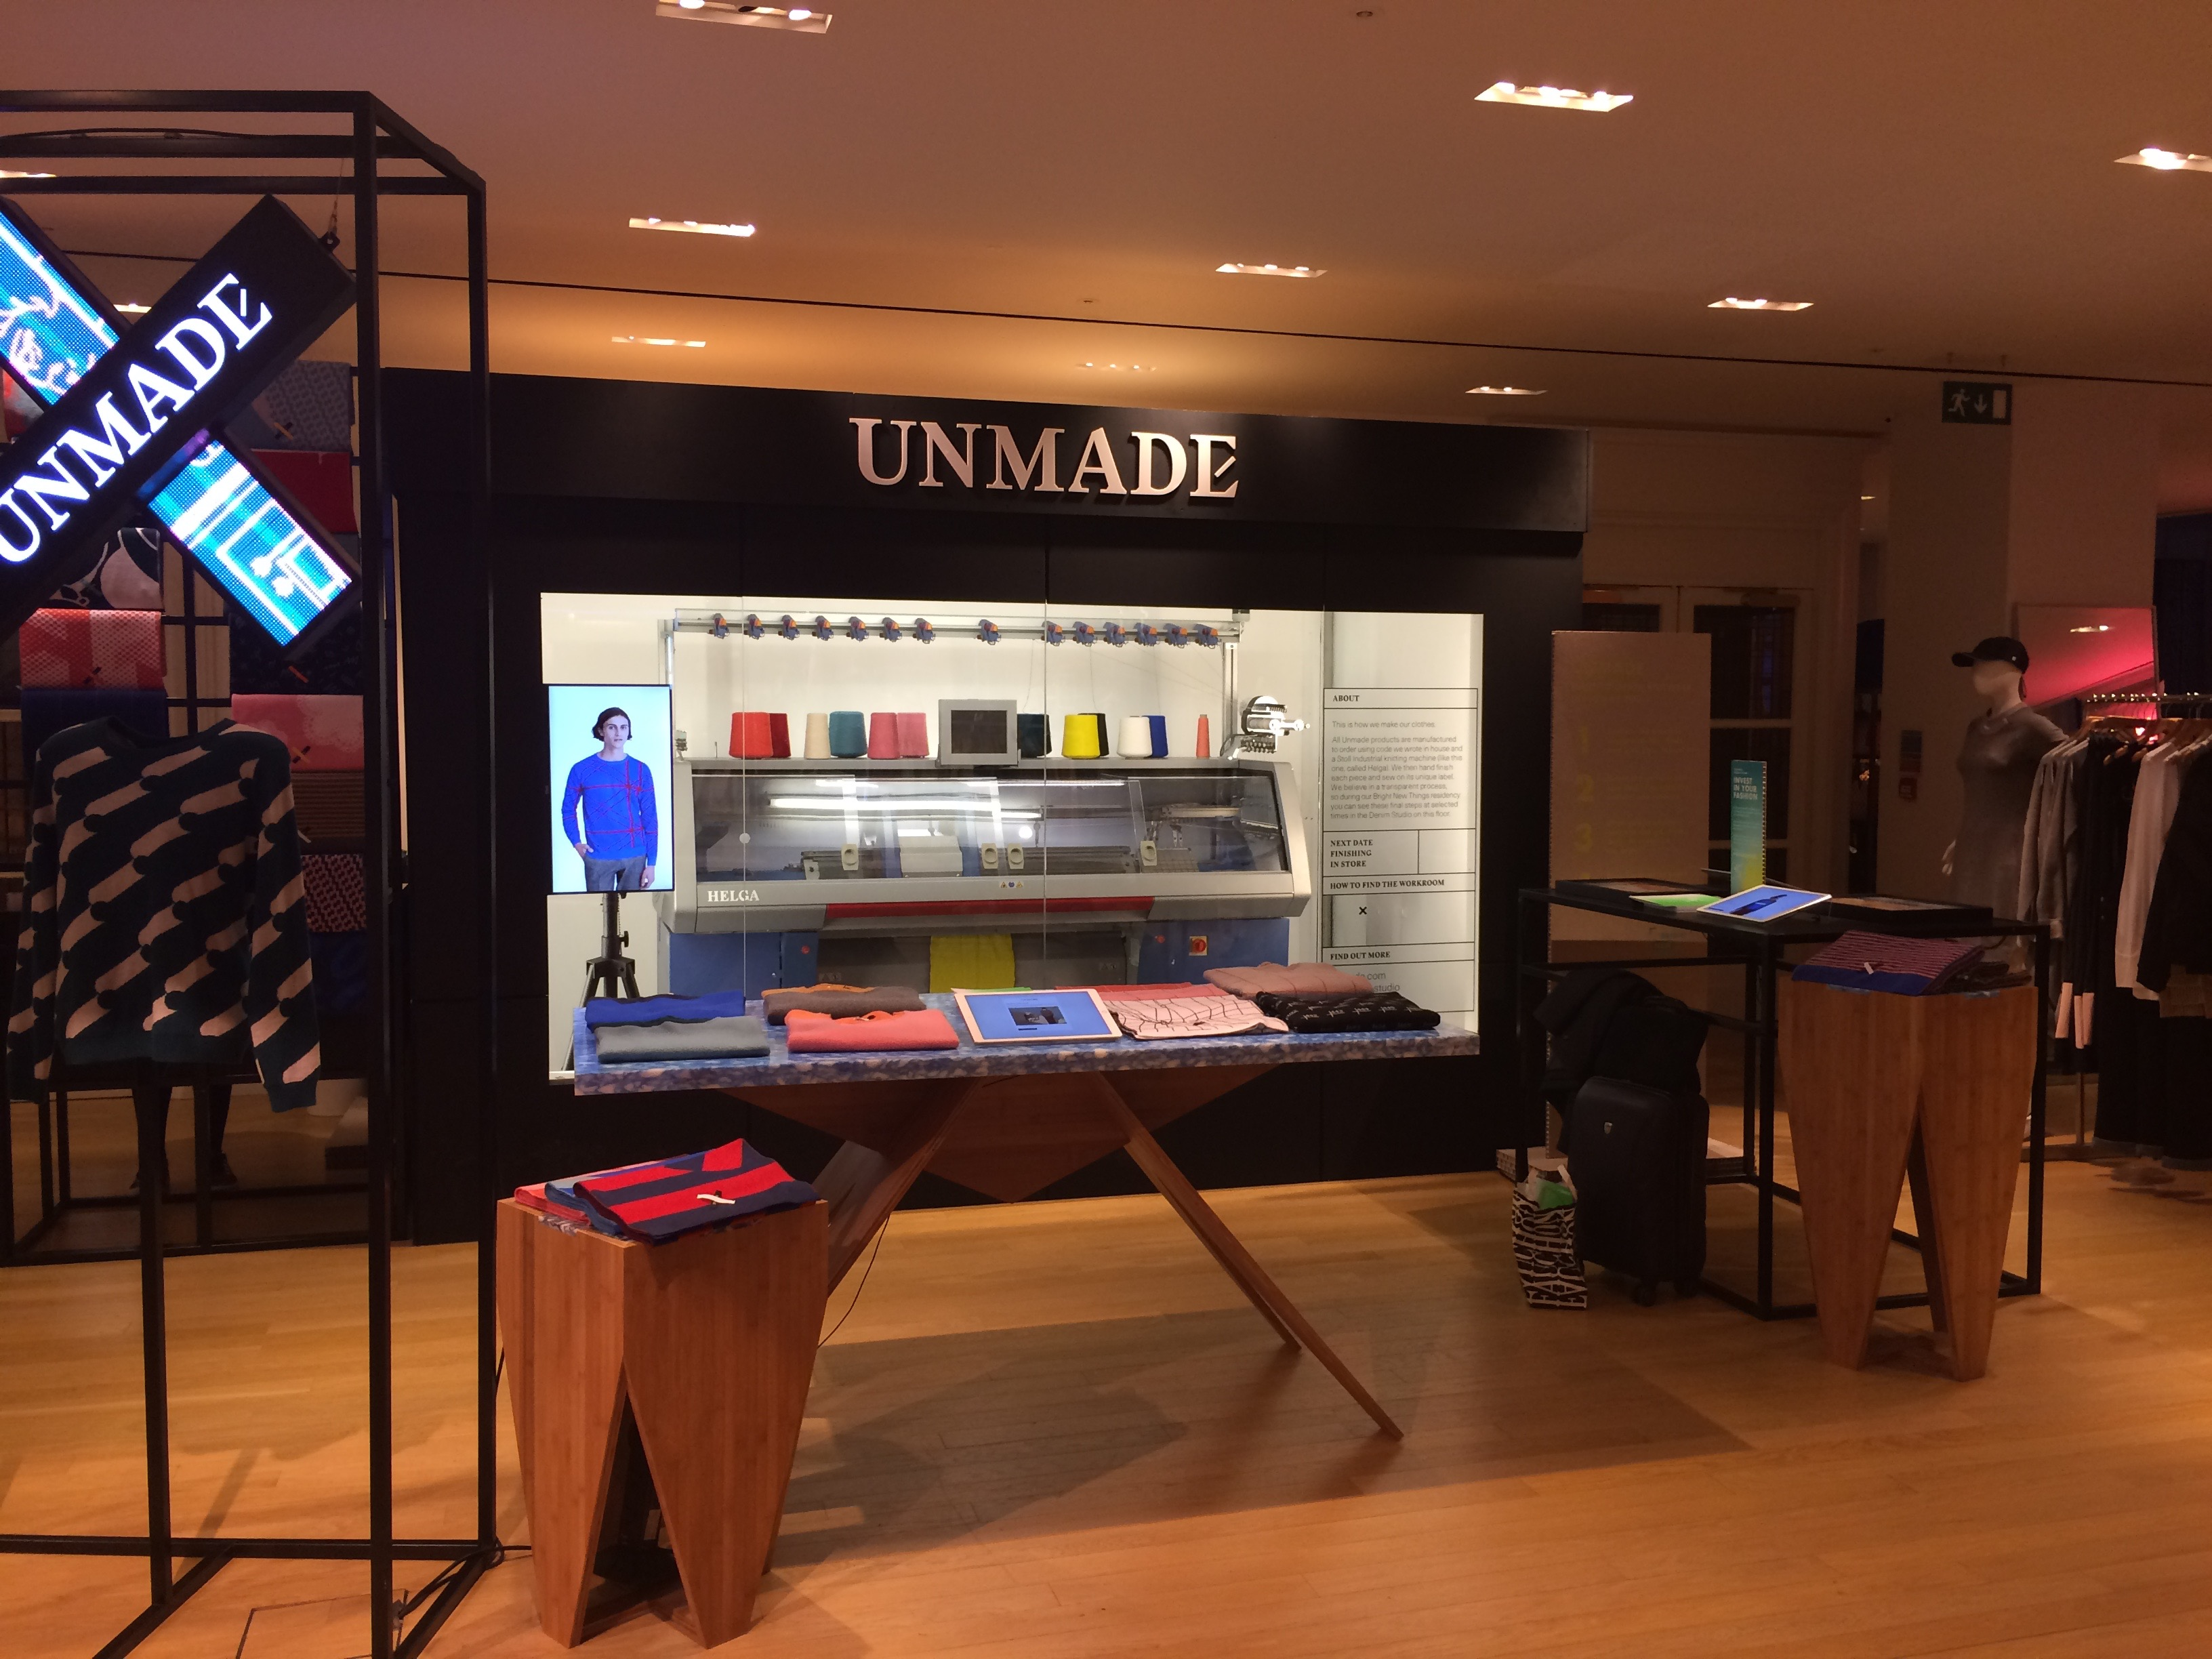 Unmade shop with Stoll knitting machine in Selfridges Oxford Street store.